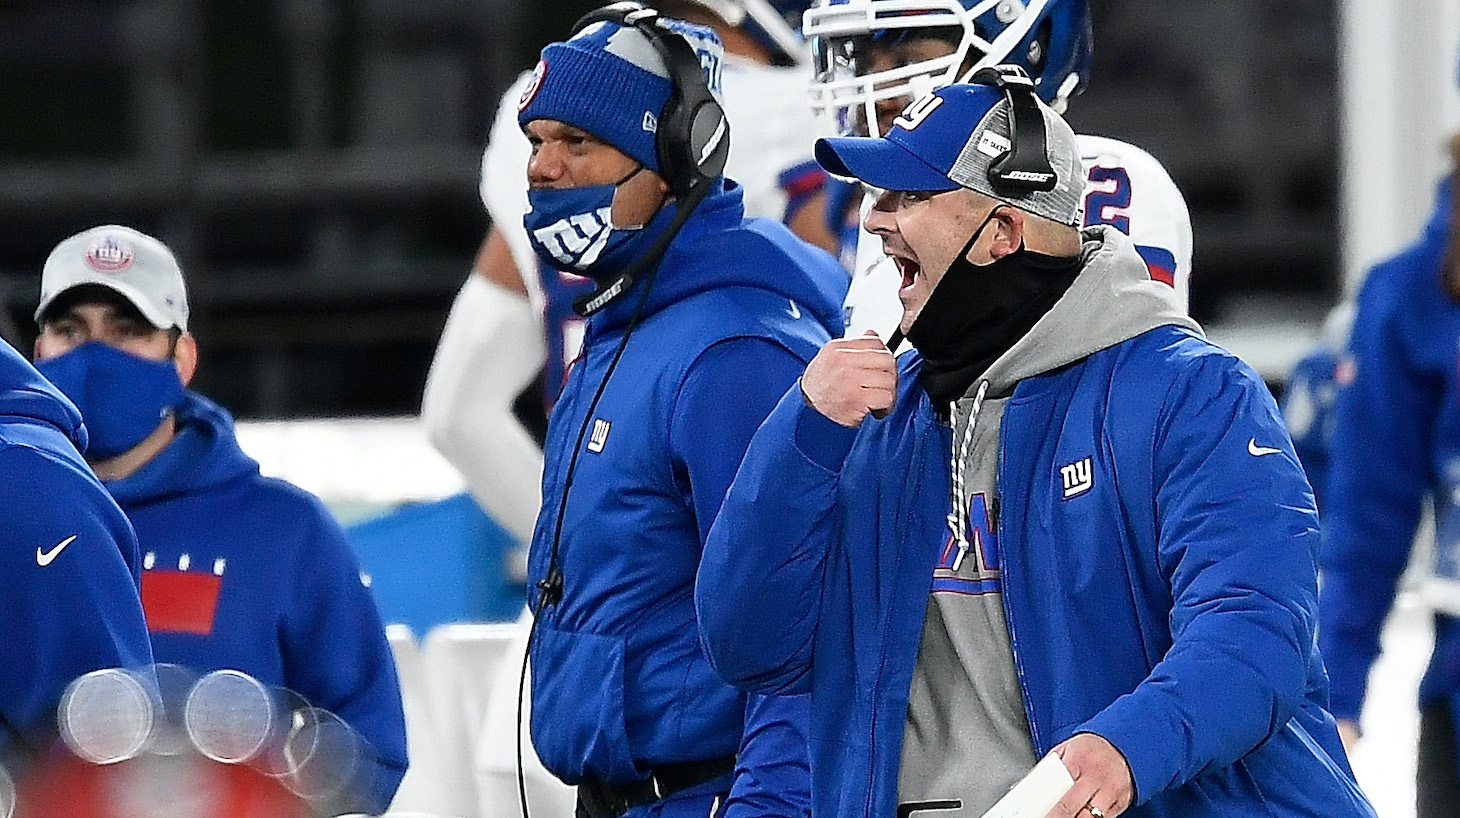 EAST RUTHERFORD, NEW JERSEY - NOVEMBER 02: Head coach Joe Judge of the New York Giants reacts during the first half against the Tampa Bay Buccaneers at MetLife Stadium on November 02, 2020 in East Rutherford, New Jersey. (Photo by Sarah Stier/Getty Images)